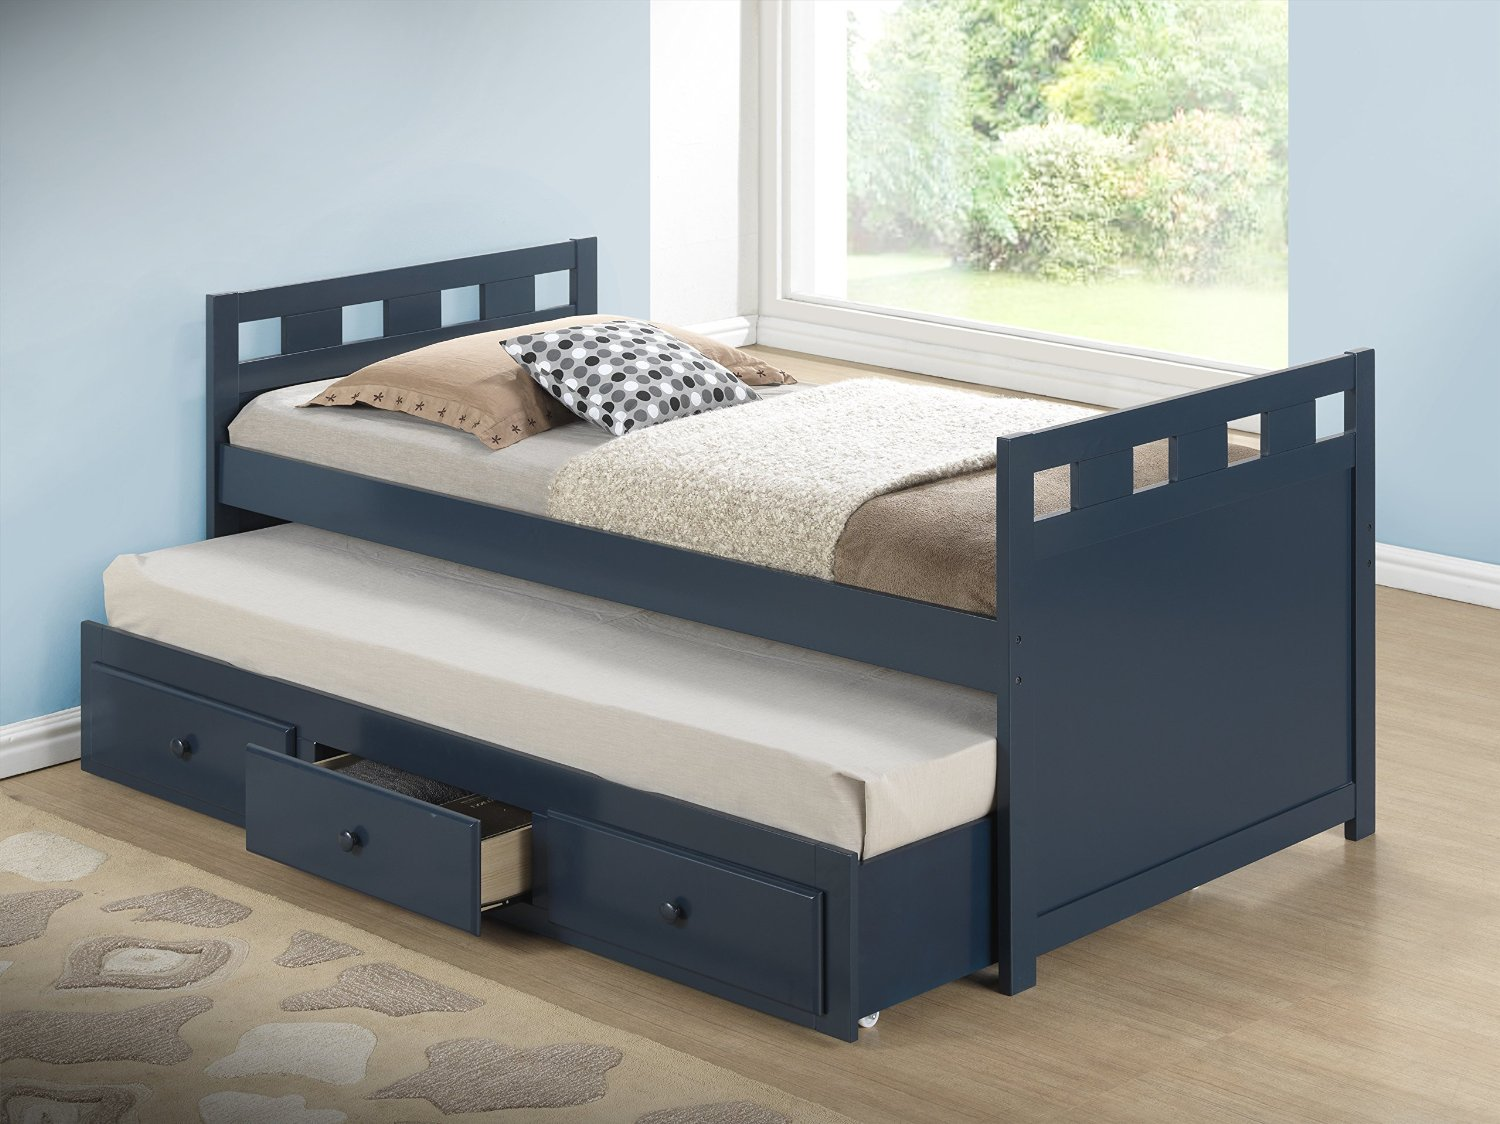 Twin bed with pull out slide out trundle bed underneath for Beds with trundle